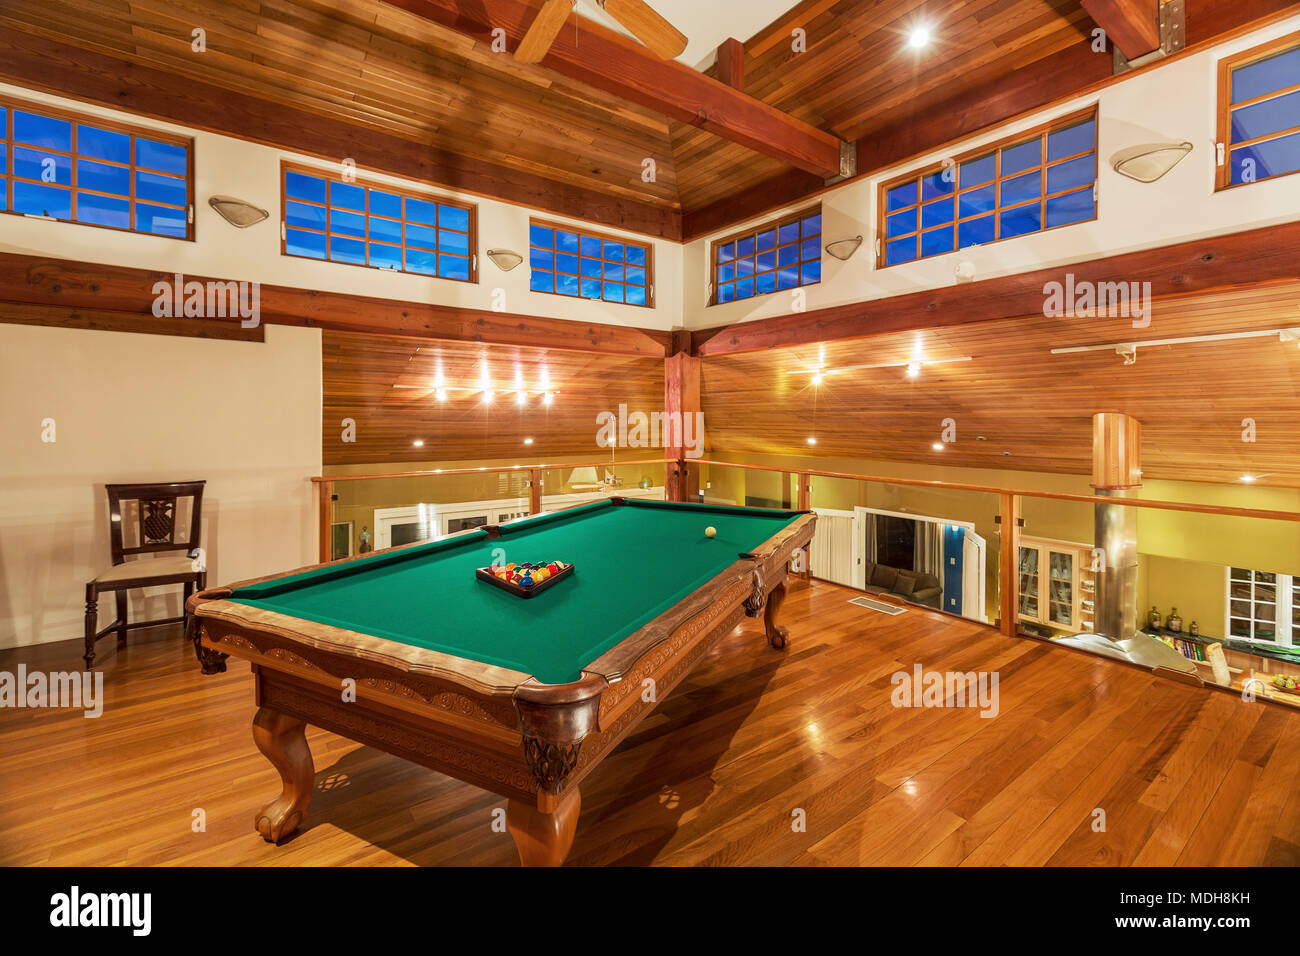 Pool Table In Luxury Home Stock Photo